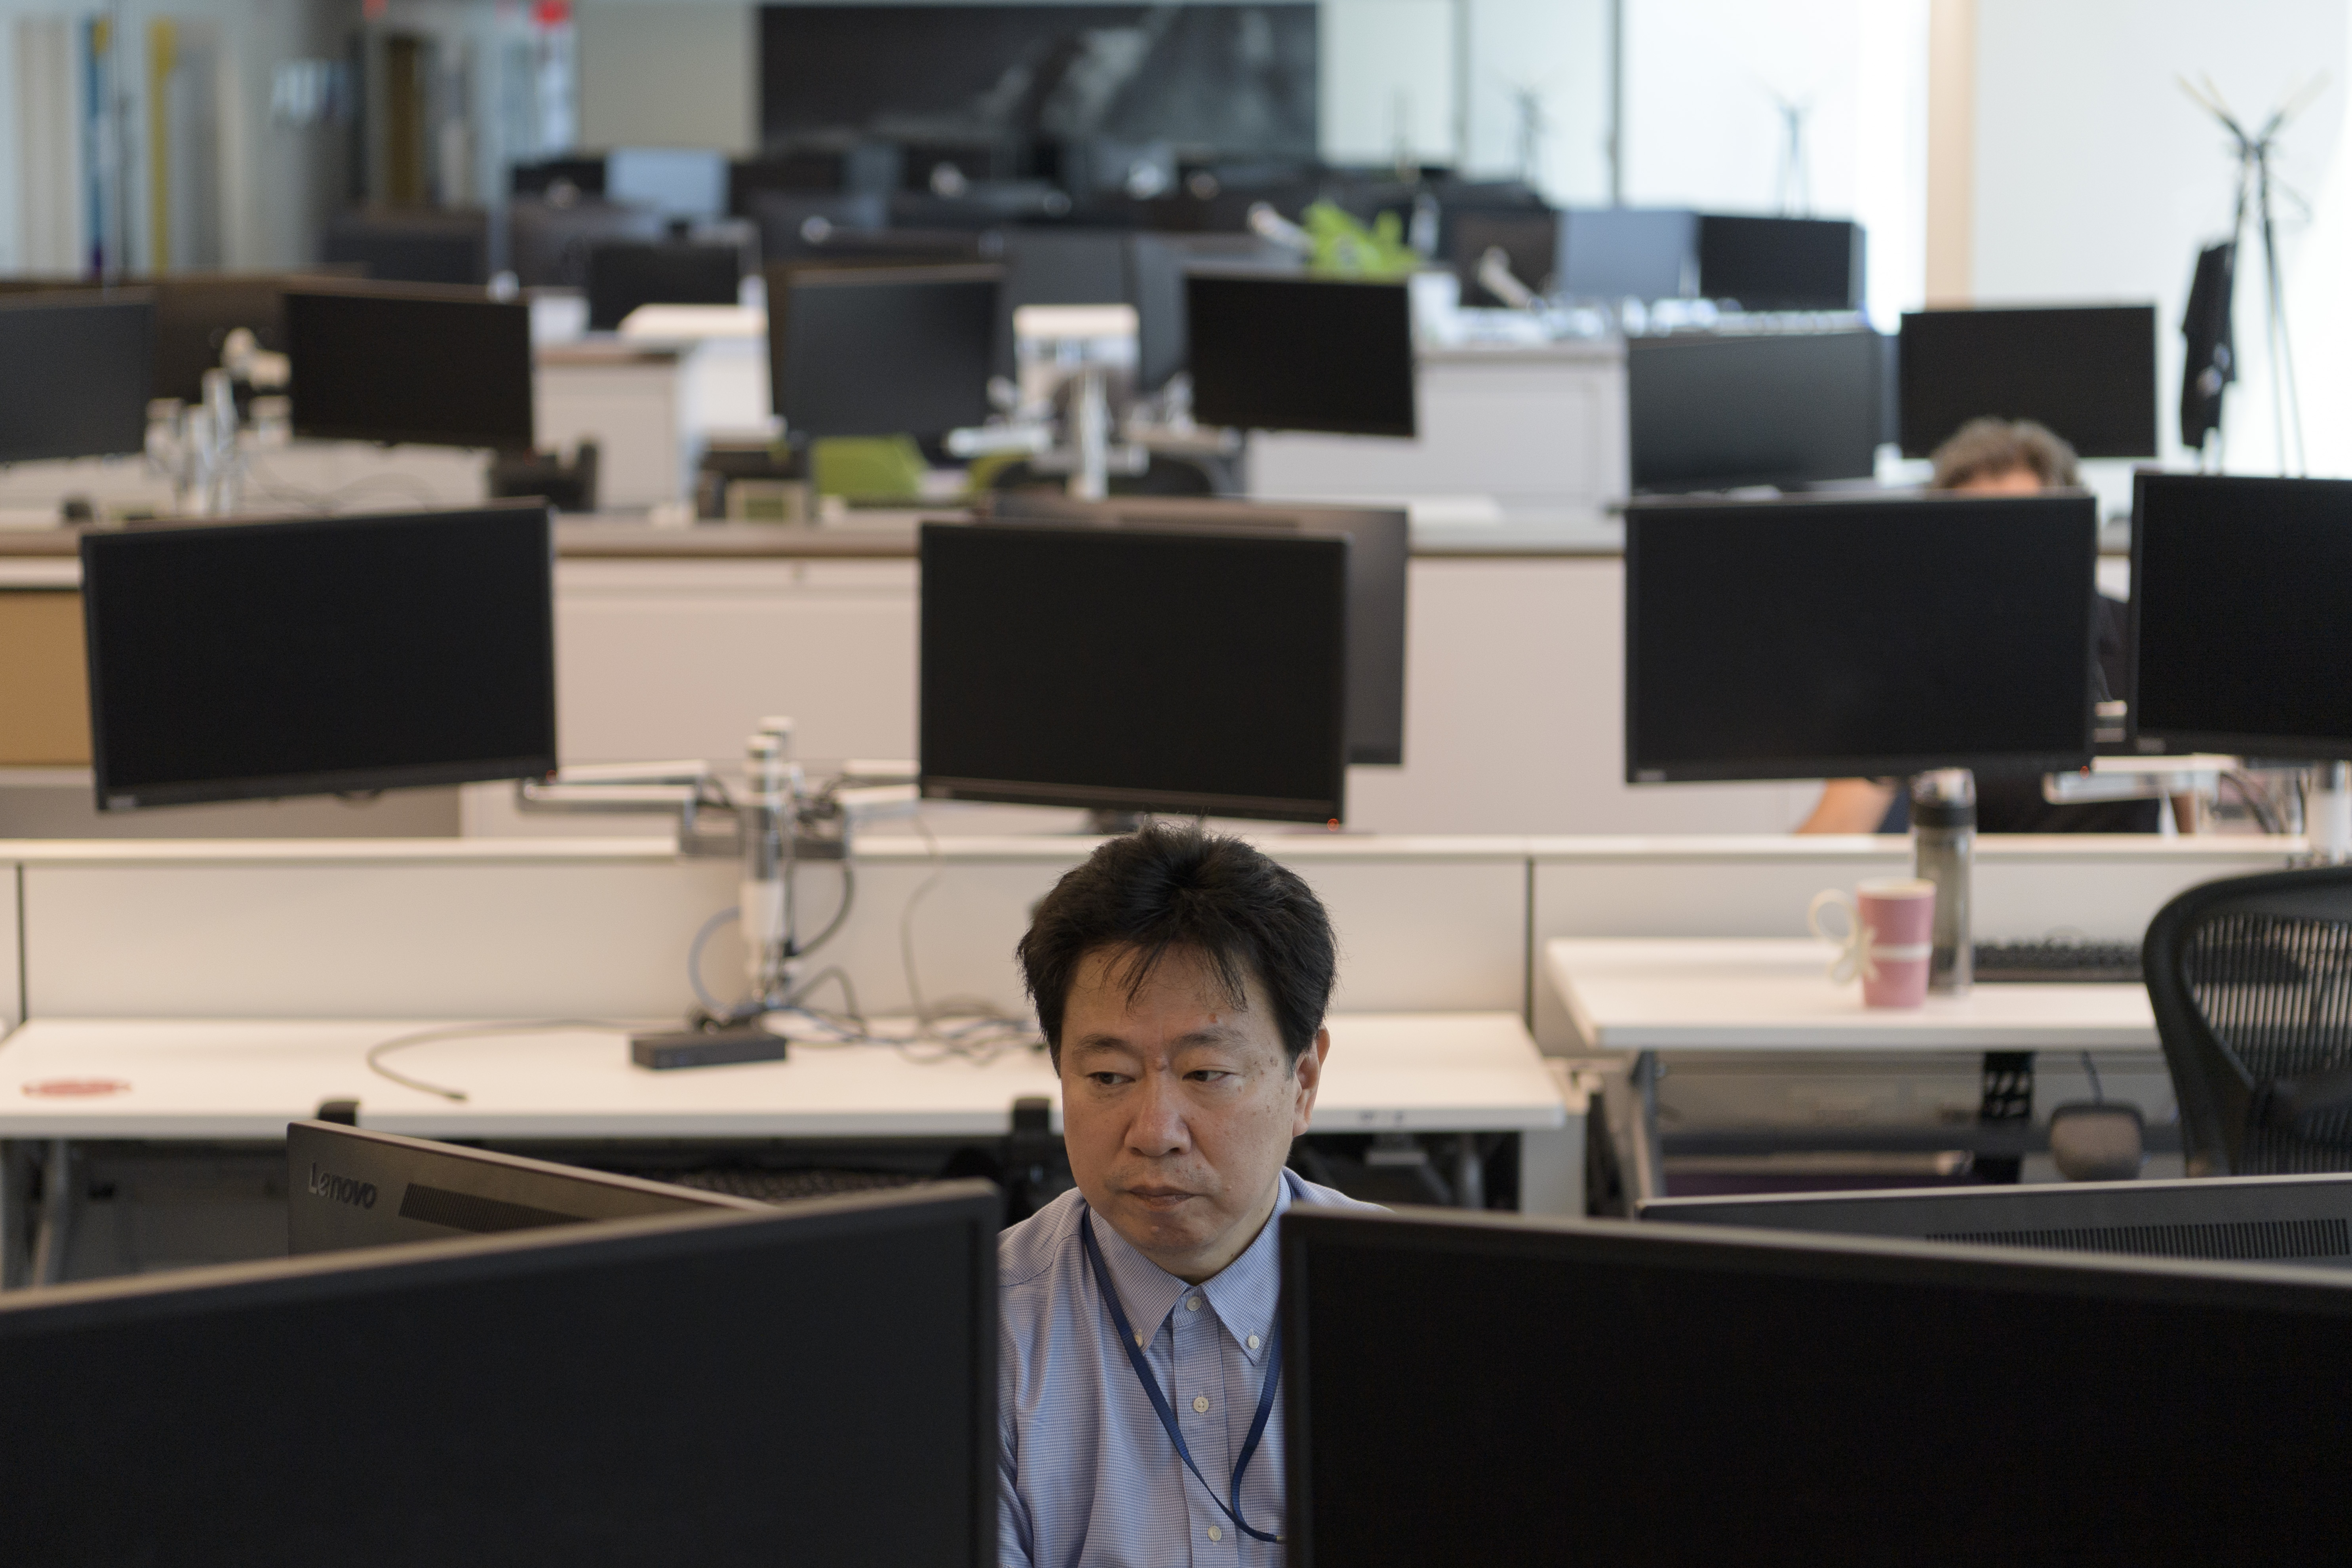 Man sitting at a desk in an open desk space.